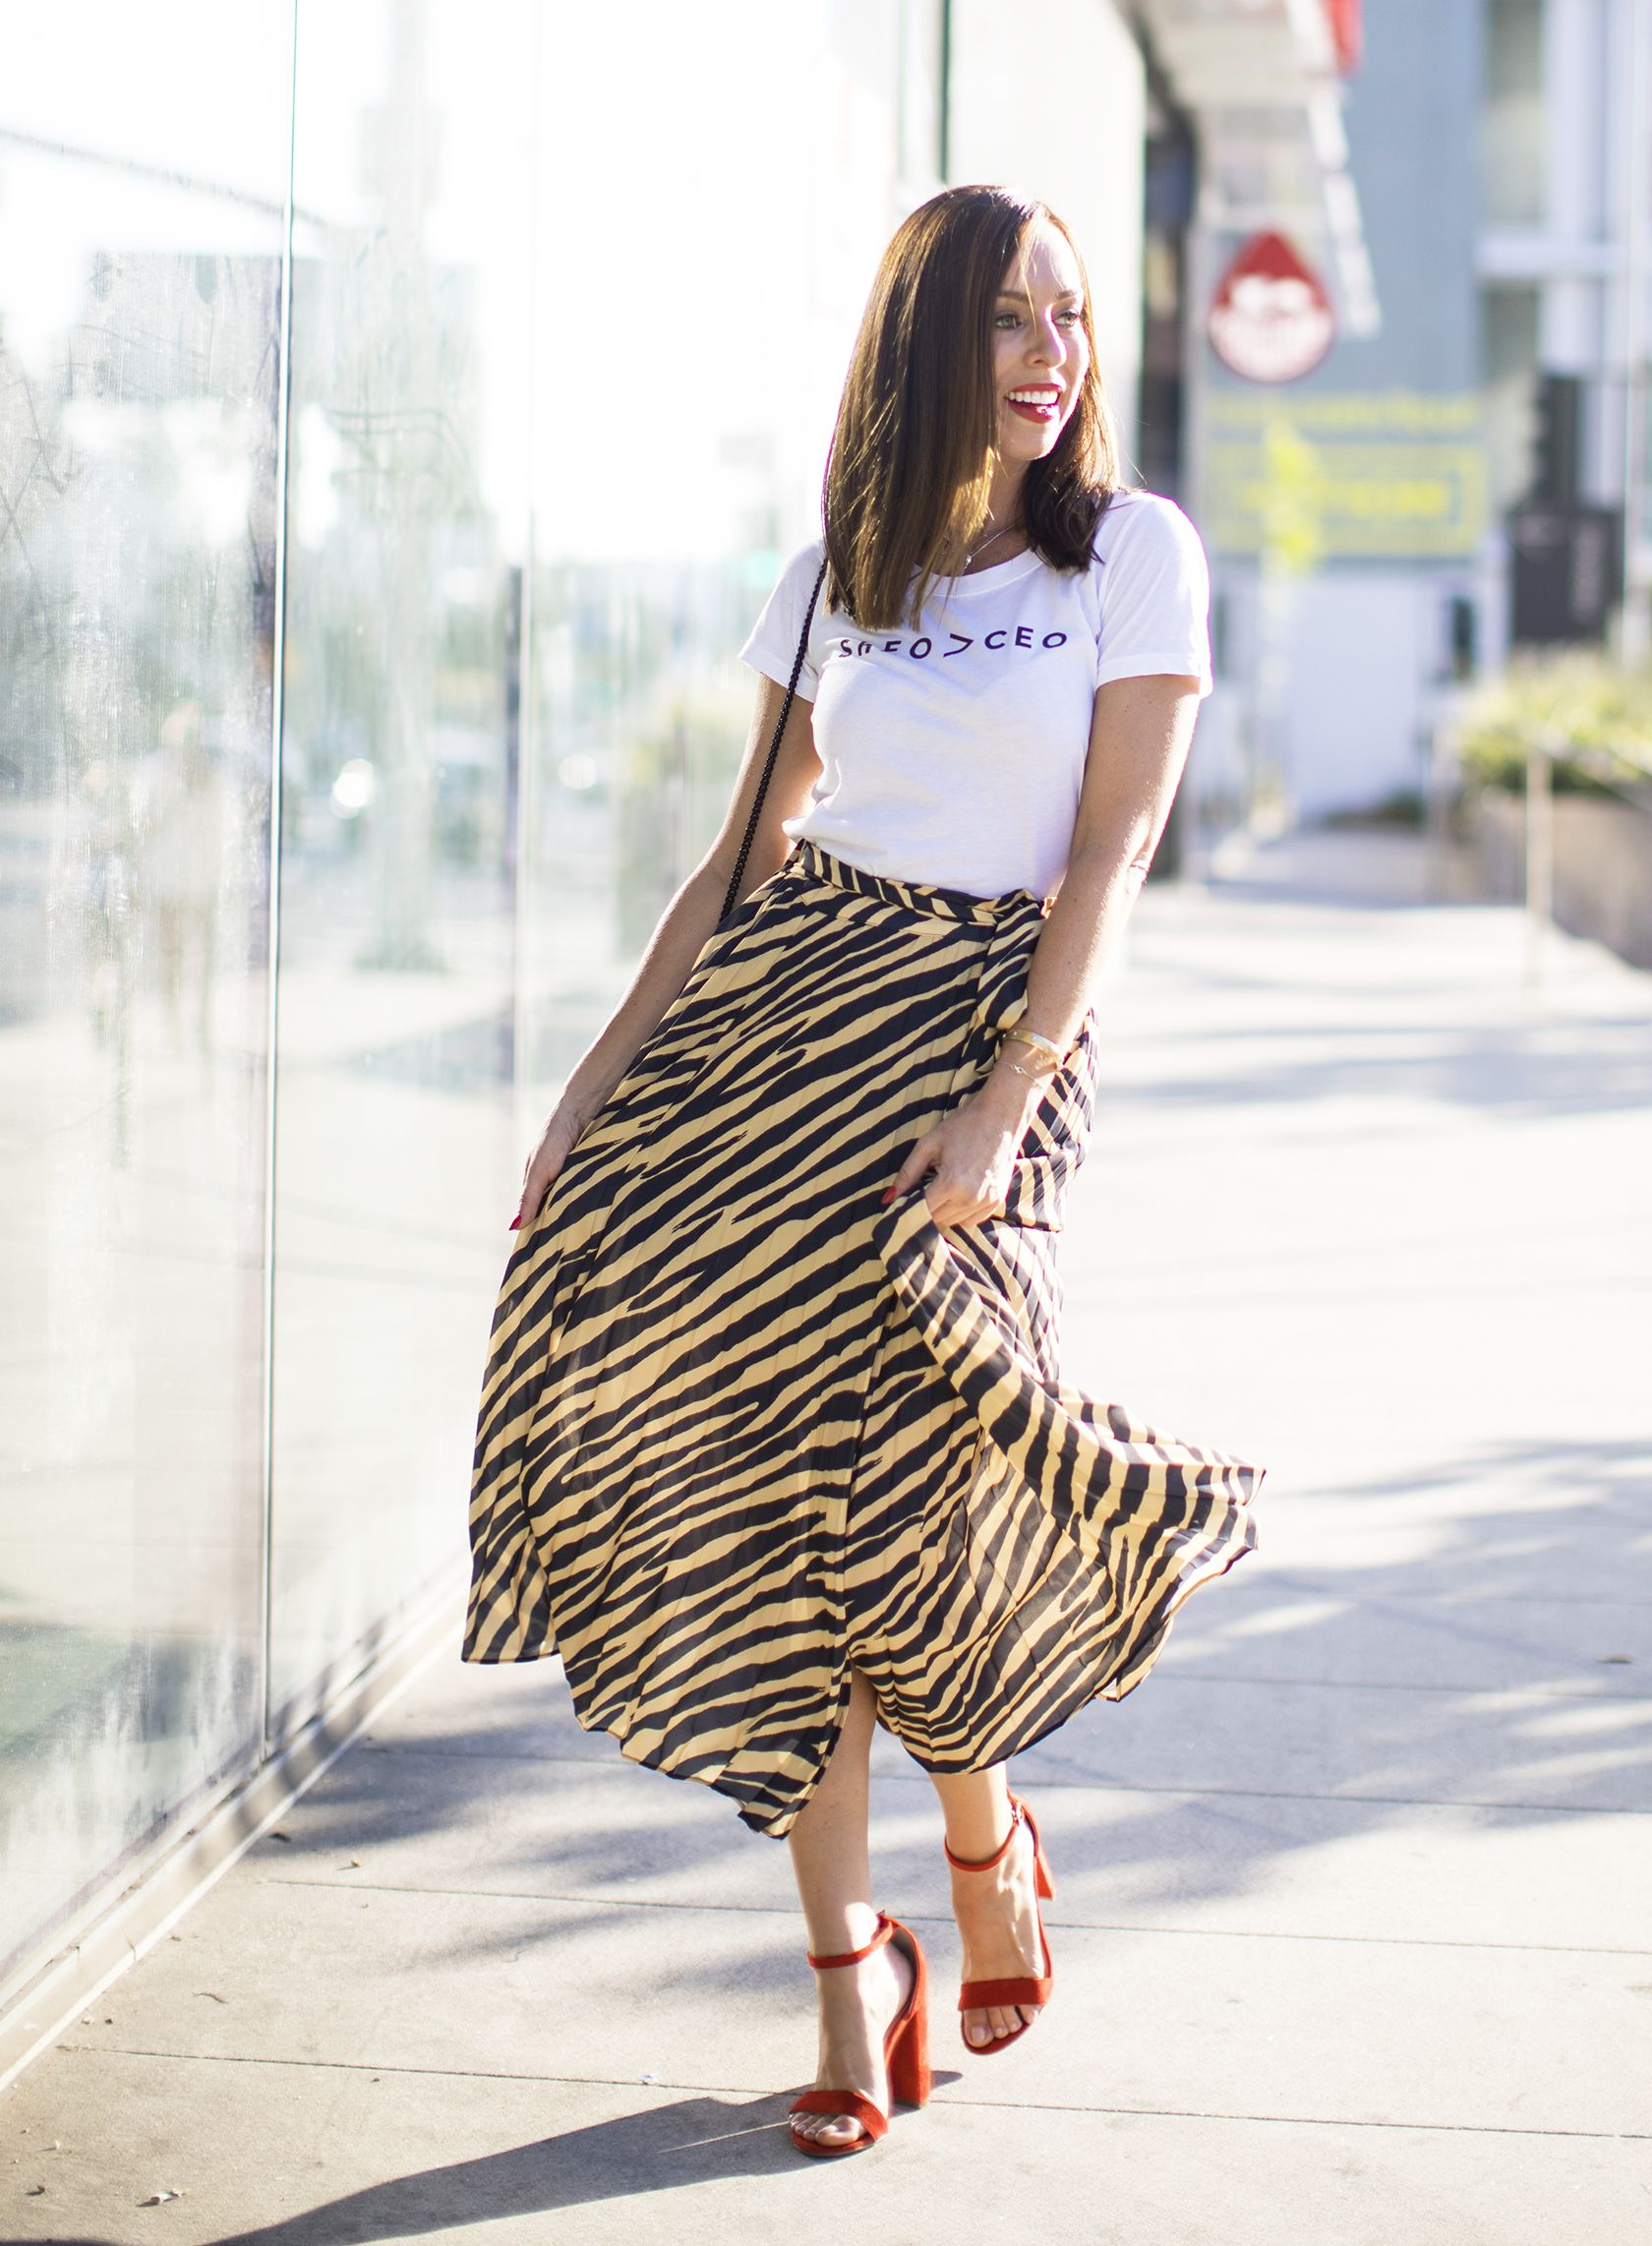 d9edc72bb7 Sydne Style shows how to wear graphic tees with zebra print skirt  zebra   skirts  tees  tshirt  graphictee